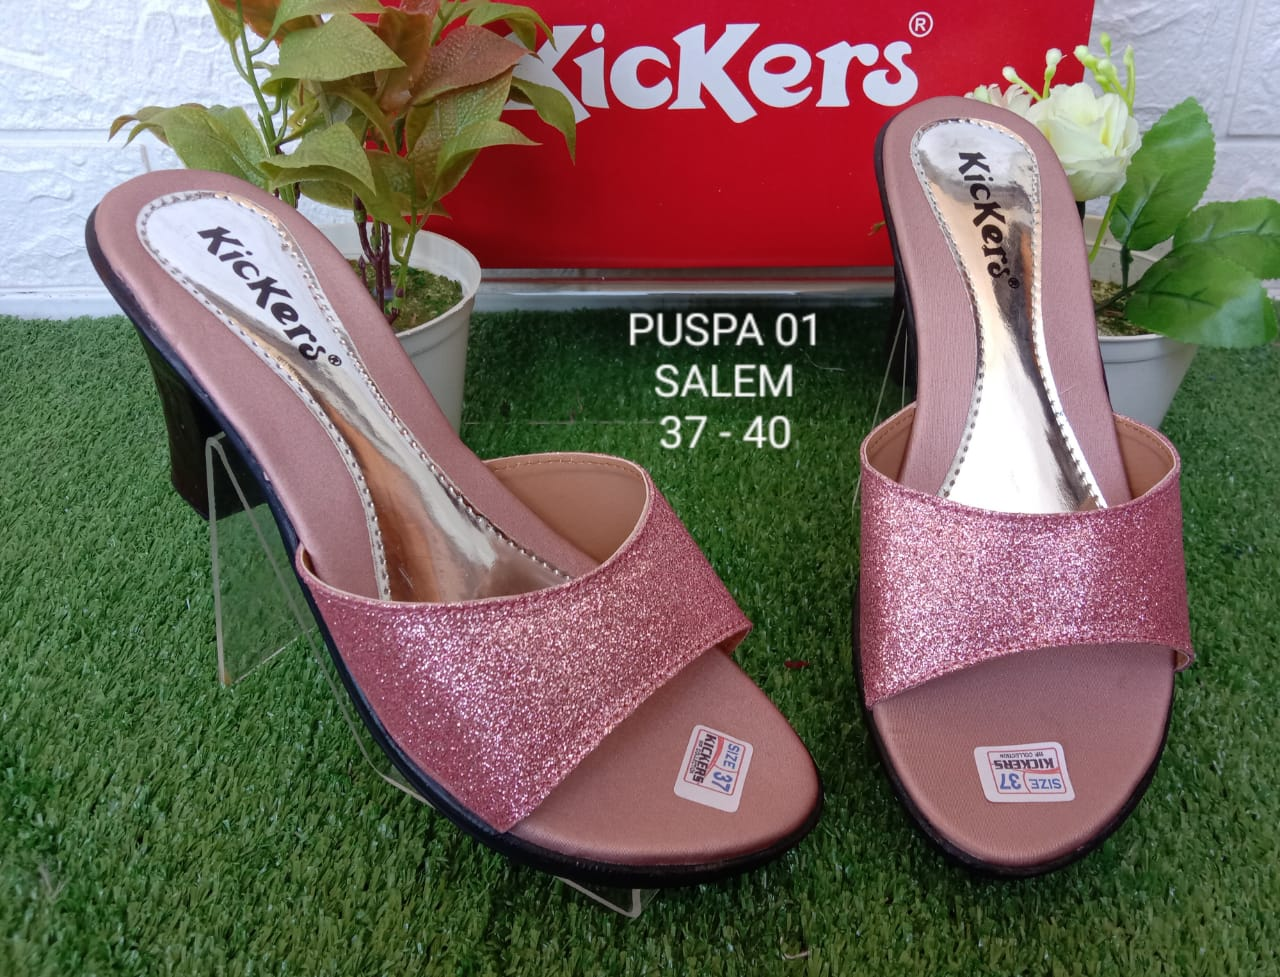 sandal kickers high heels pupsa 01